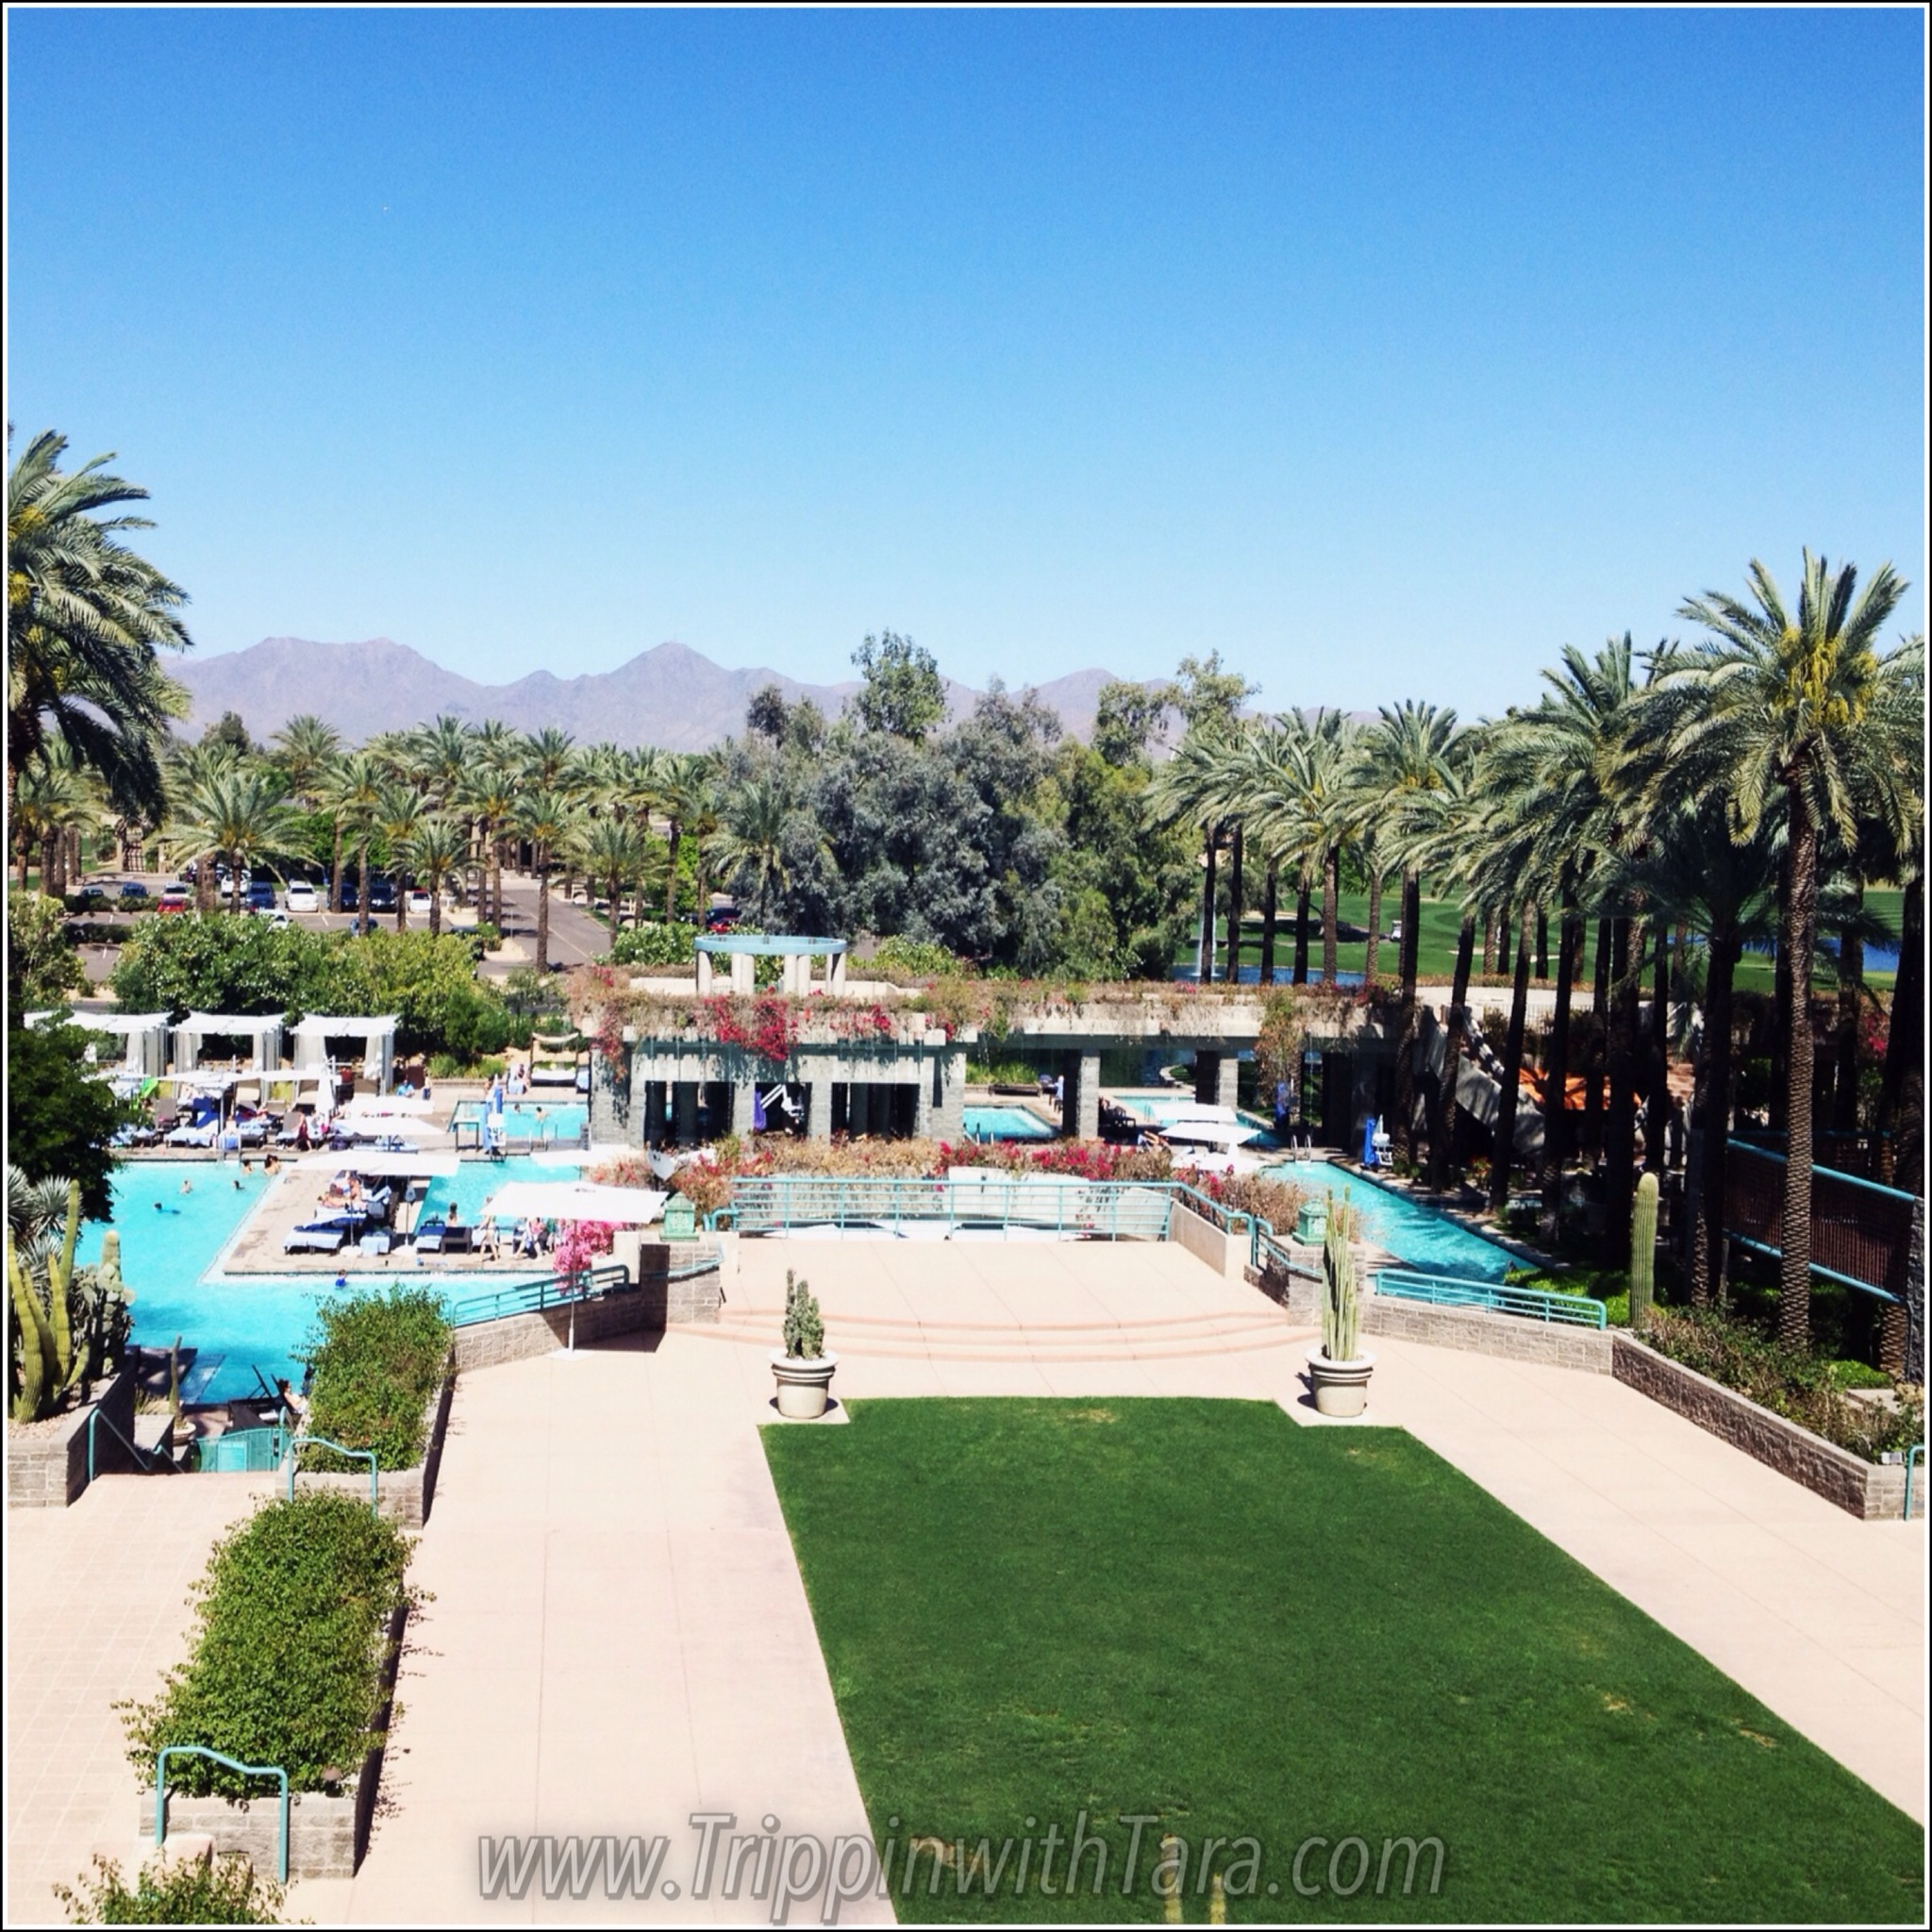 Hyatt Regency Scottsdale Resort at Gainey Ranch - @HyattScottsdale